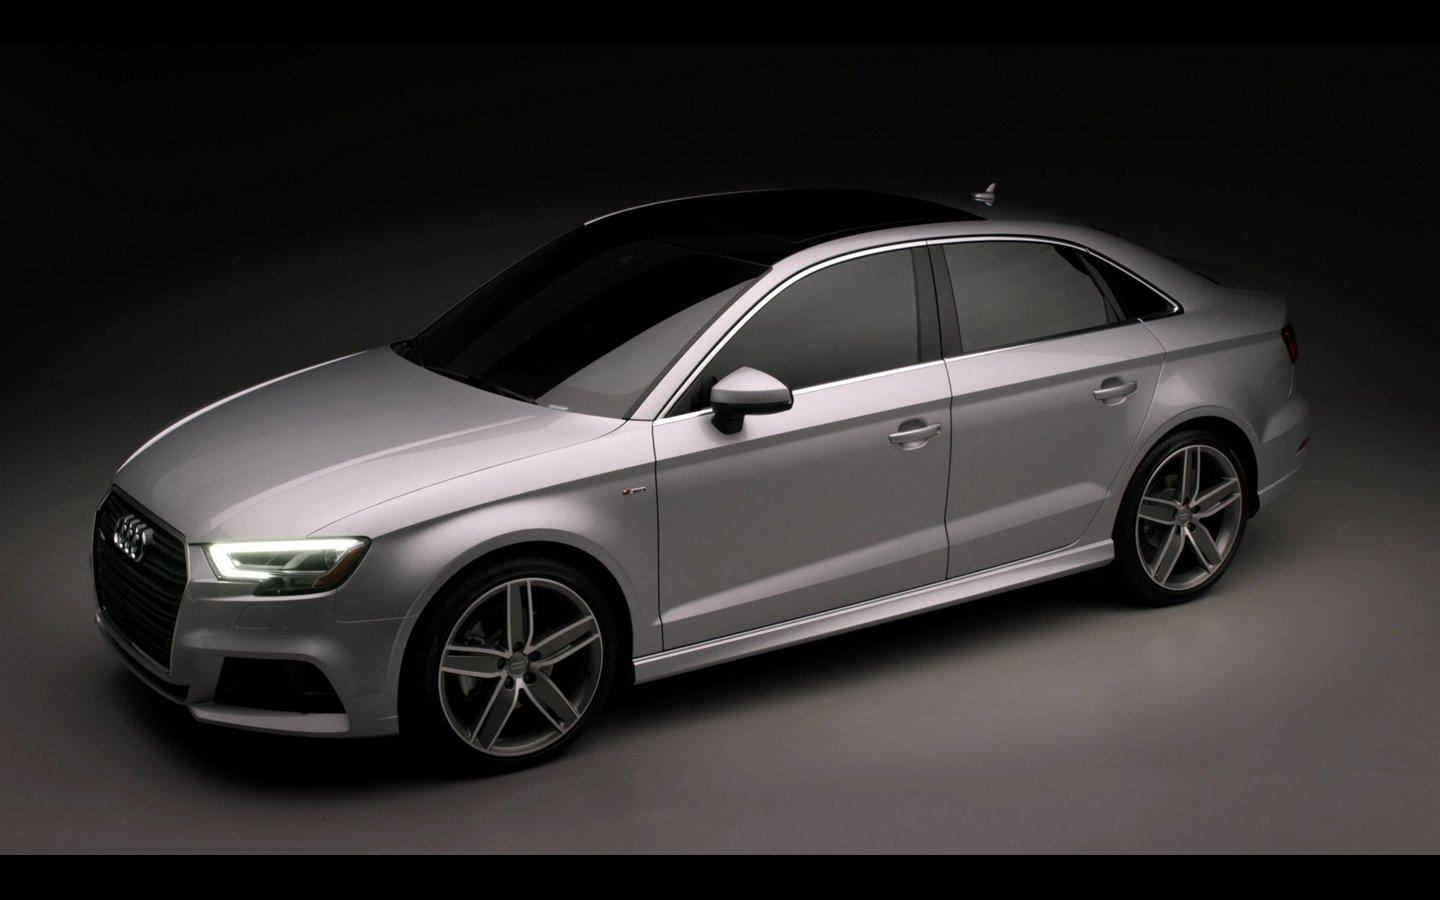 Audi A3 Sedan HD Wallpapers